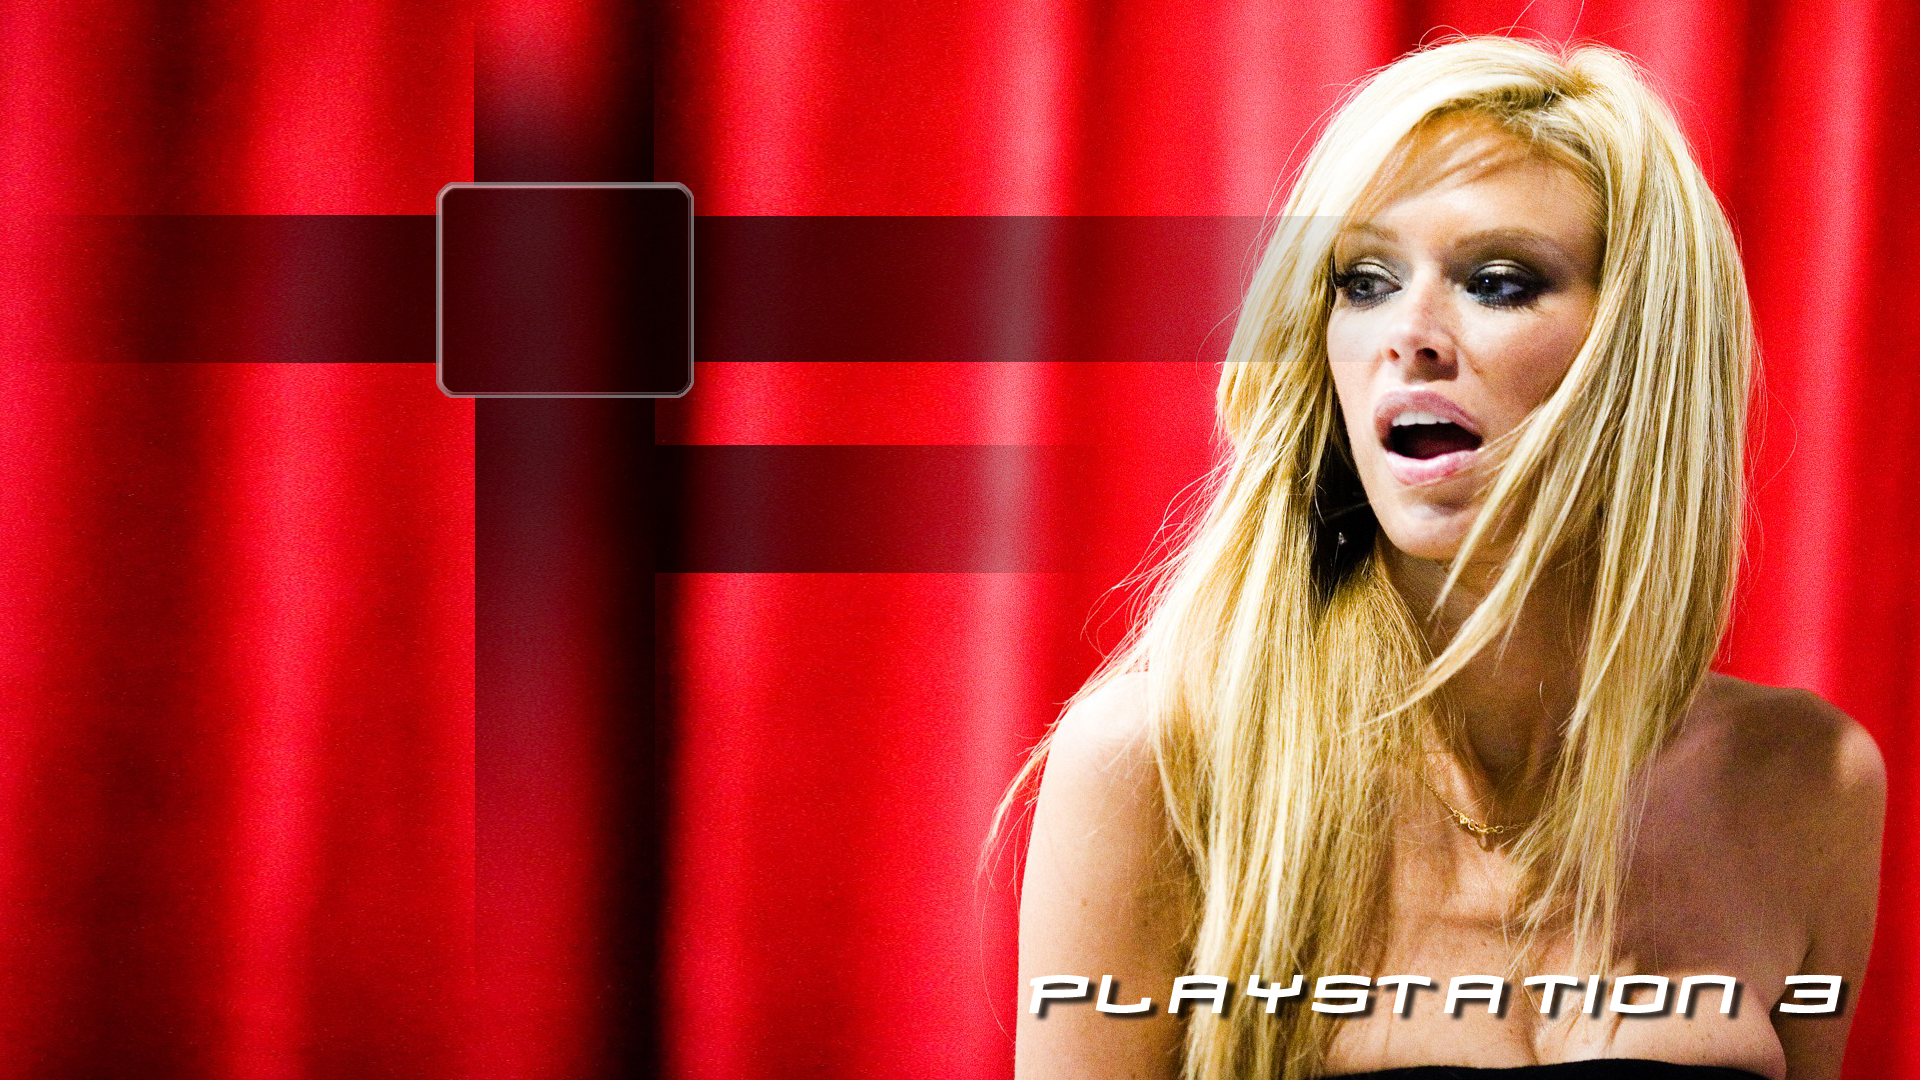 jenna jameson wallpaper